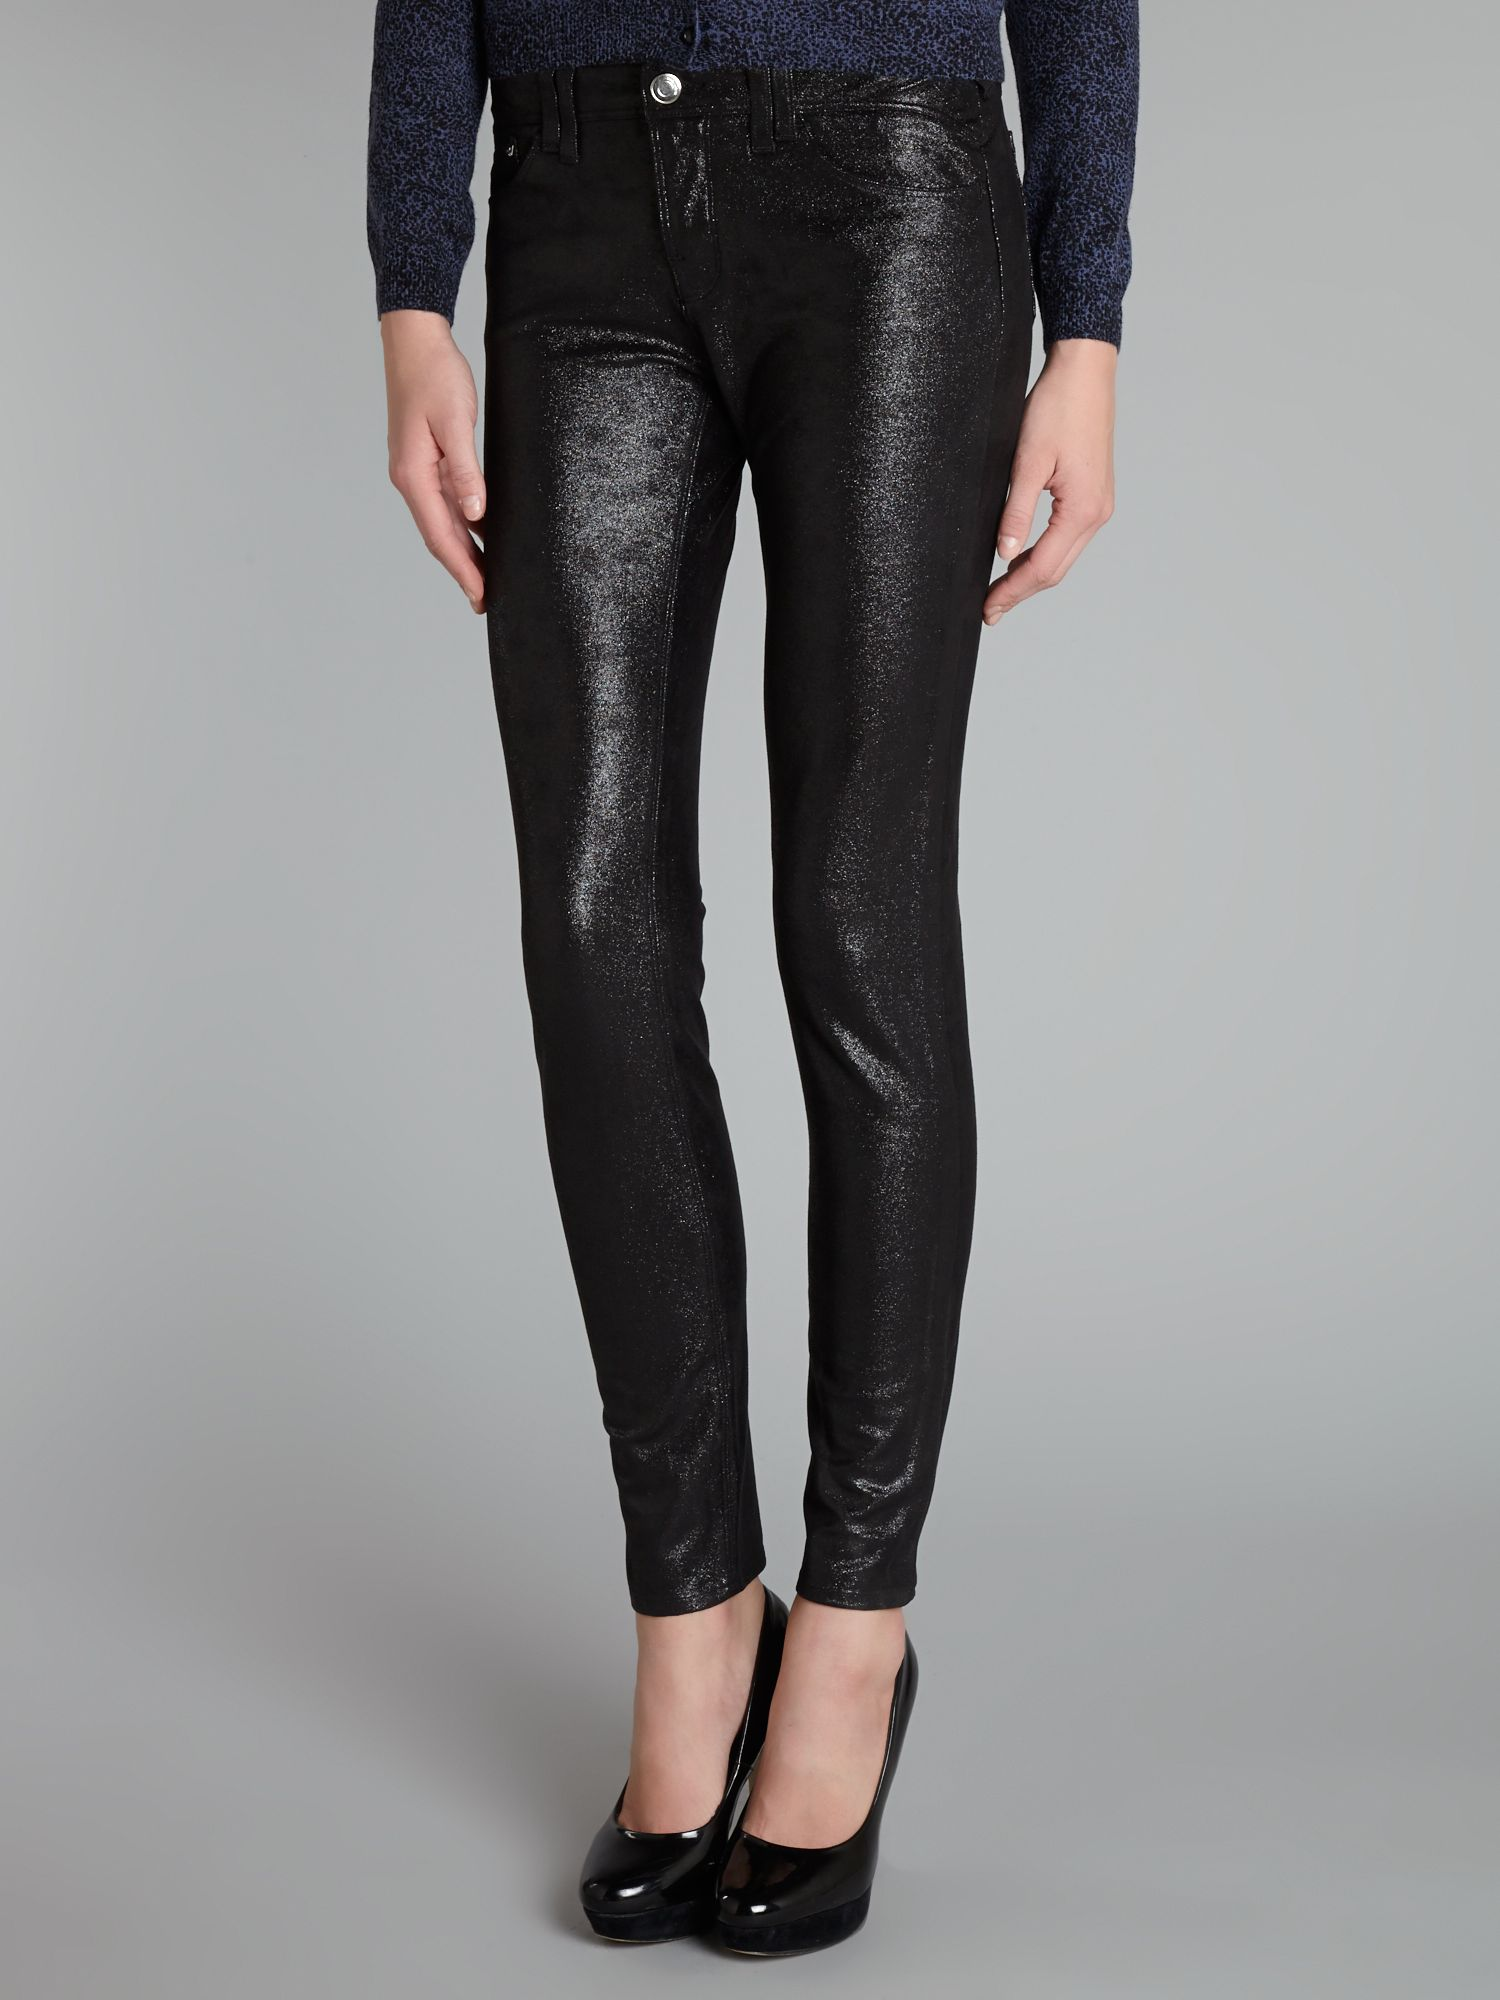 J28 mid-rise super skinny coated jeans